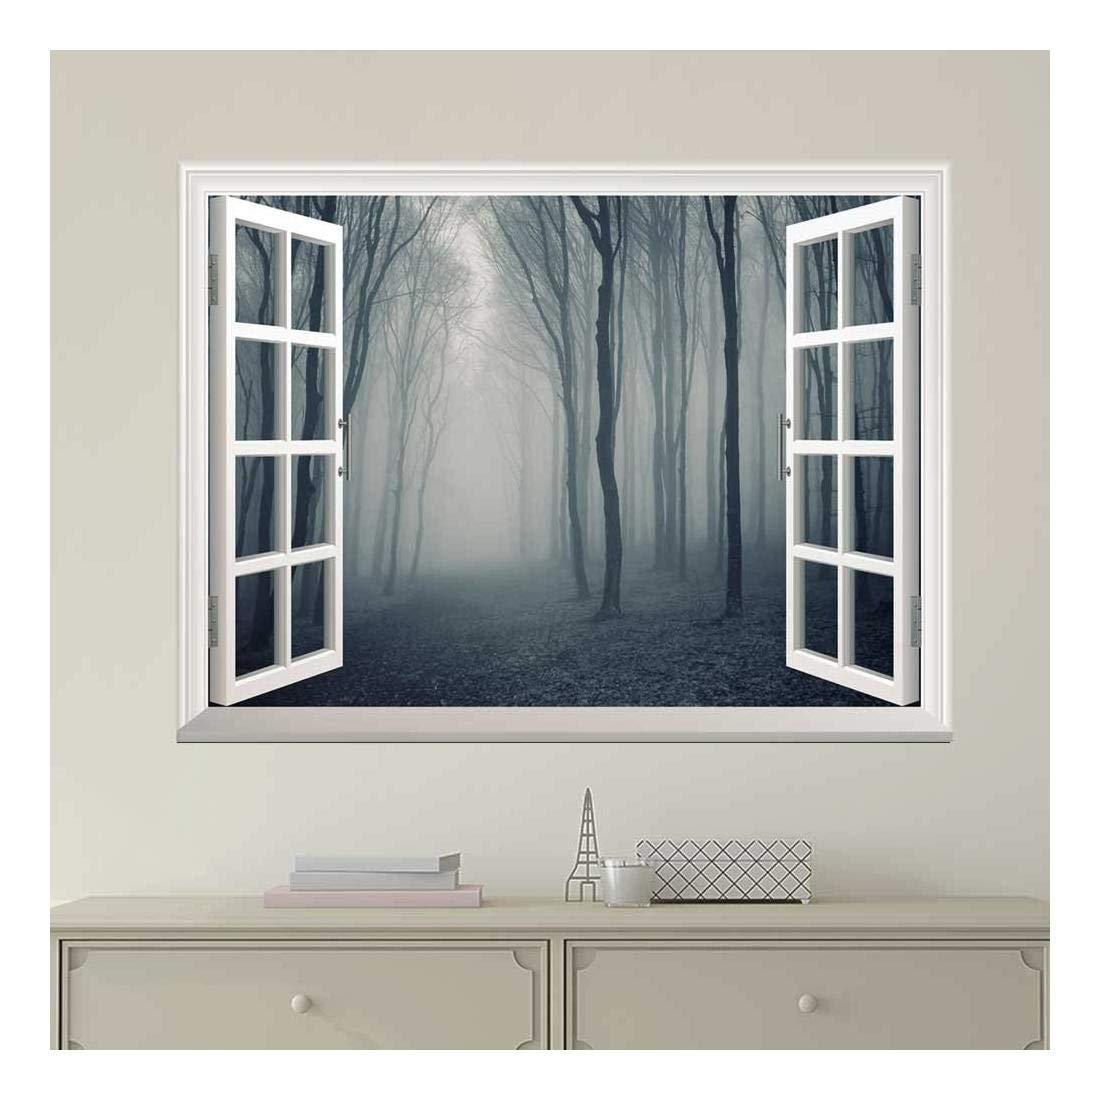 wall26 Modern White Window Looking Out Into a Dark Foggy Forest - Wall Mural, Removable Sticker, Home Decor - 24x32 inches